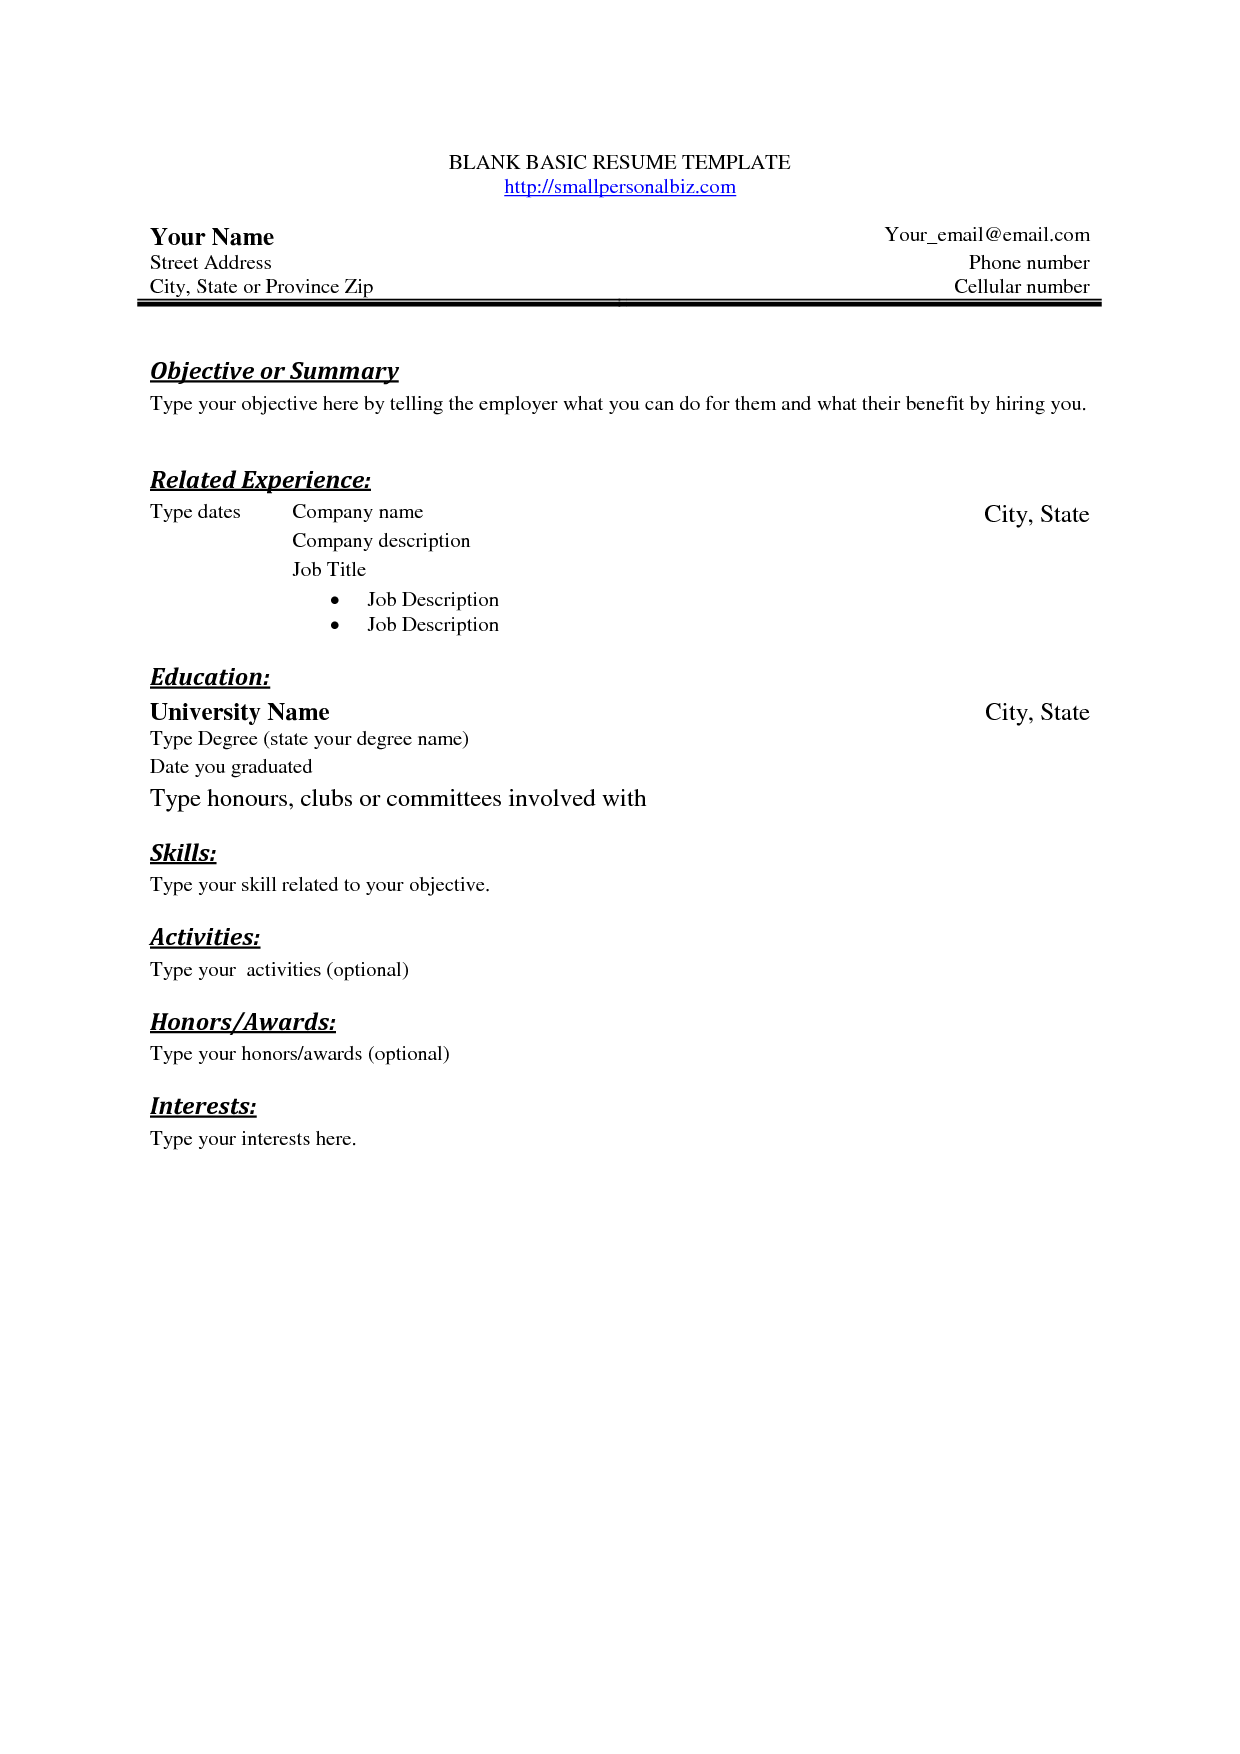 free basic blank resume template free basic sample resume free simple resume template